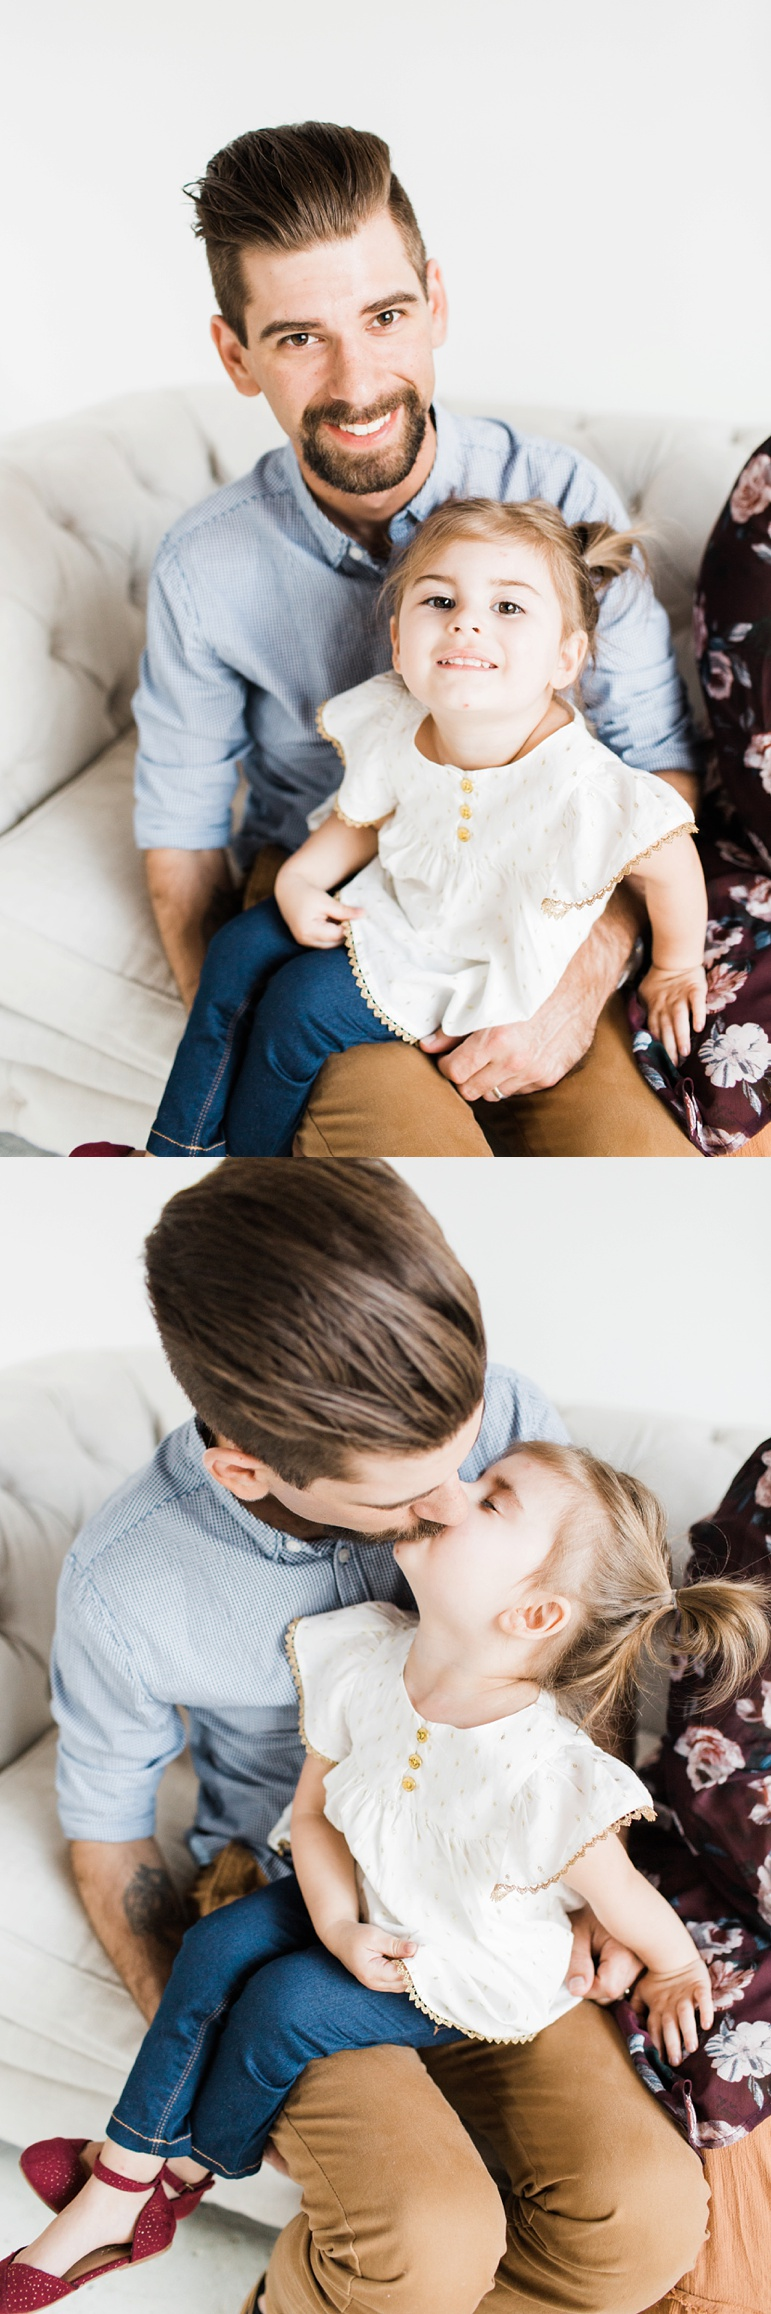 Green Bay Indoor Family Photographers, Wisconsin Lifestyle Family Photos